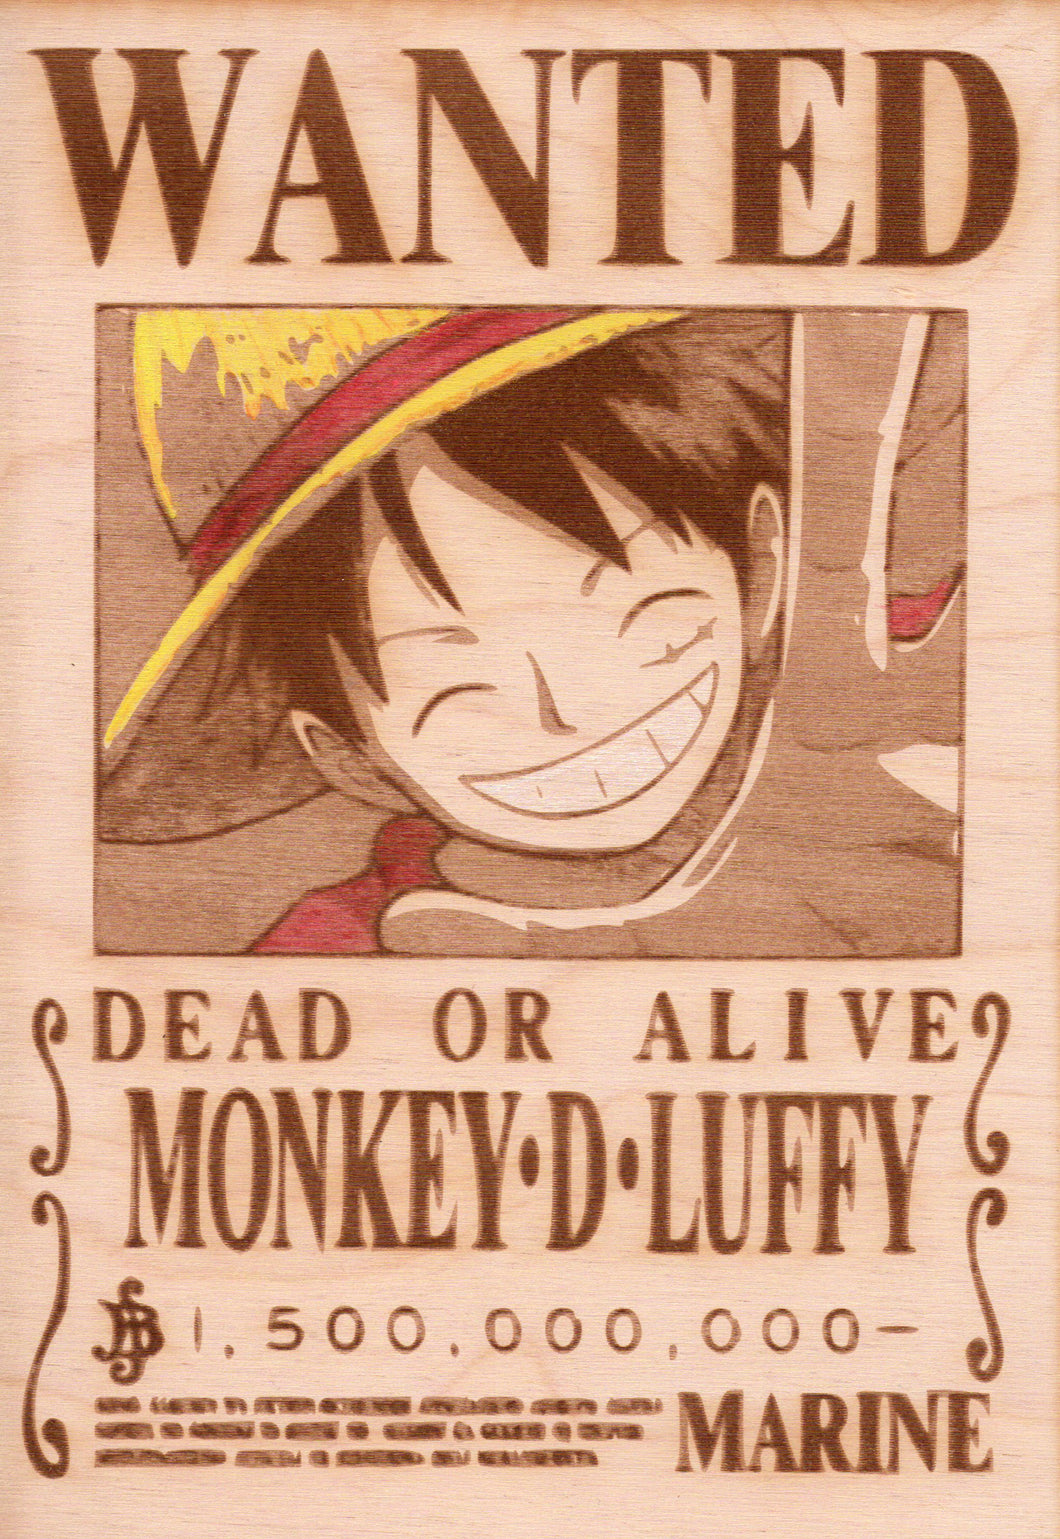 One Piece - Luffy Wanted Poster (Color) - TantrumCollectibles.com